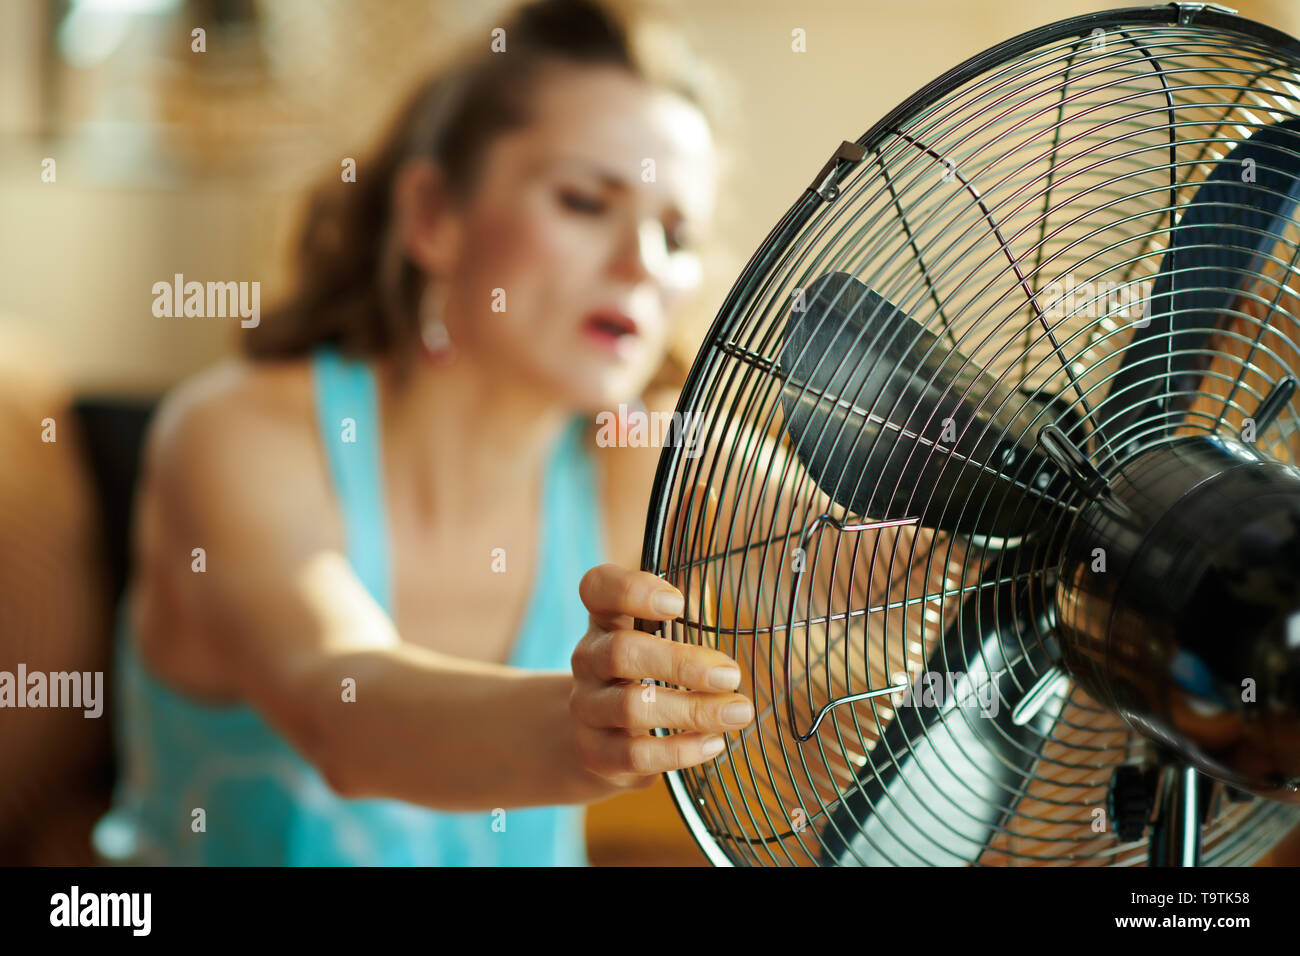 Closeup on hot modern housewife in the modern living room in sunny hot summer day using electric metallic fan suffering from summer heat. - Stock Image